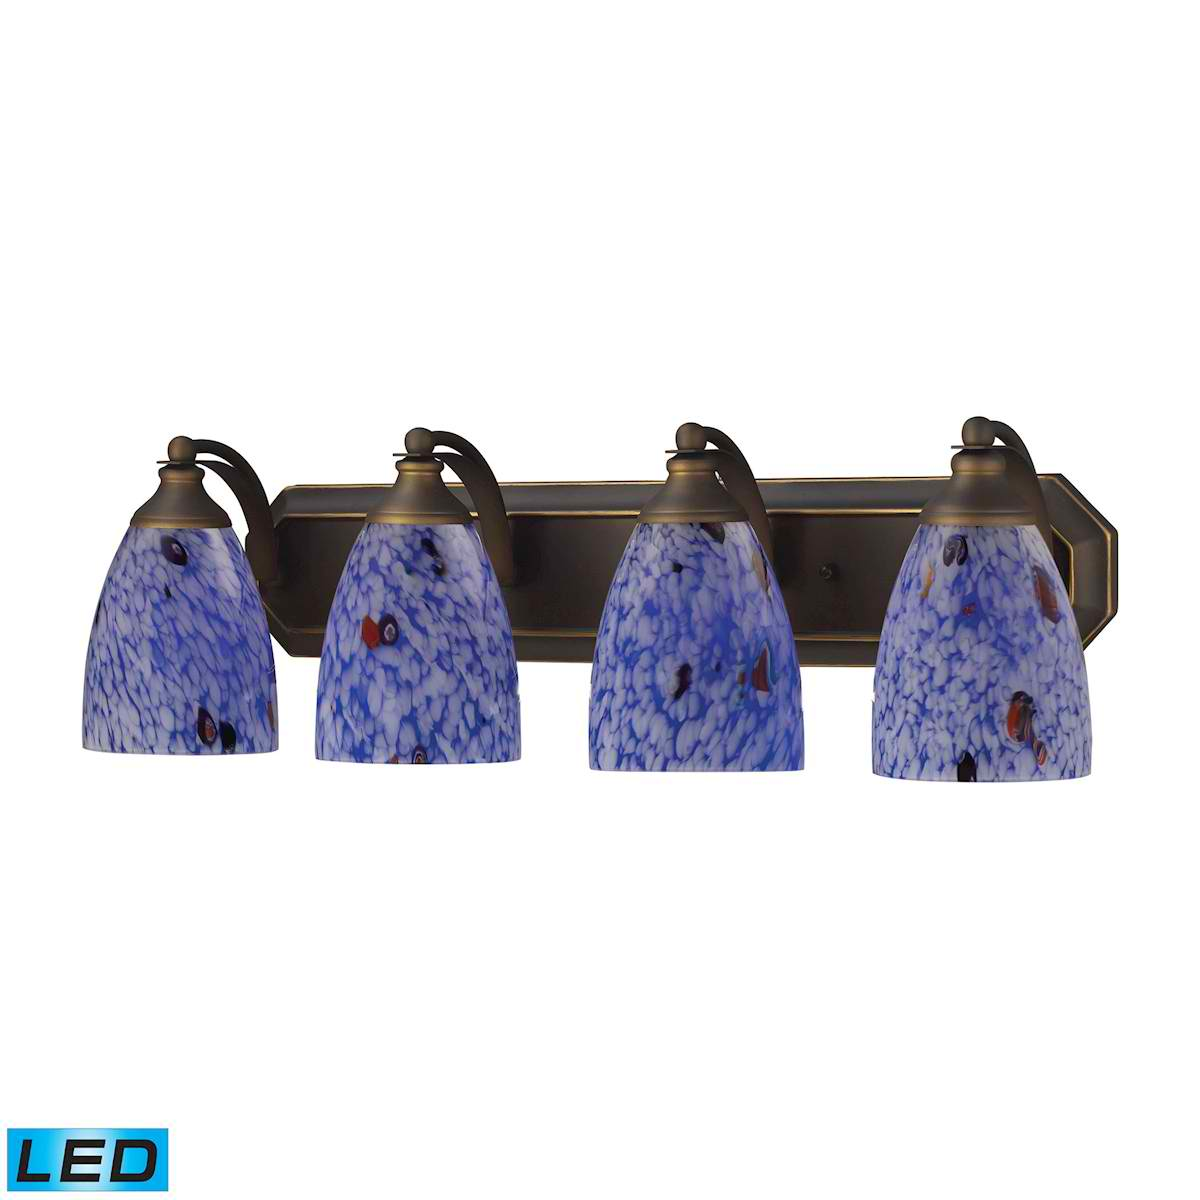 4 Light Vanity in Aged Bronze and Starburst Blue Glass - LED, 800 Lumens (3200 Lumens Total) with Full Scale